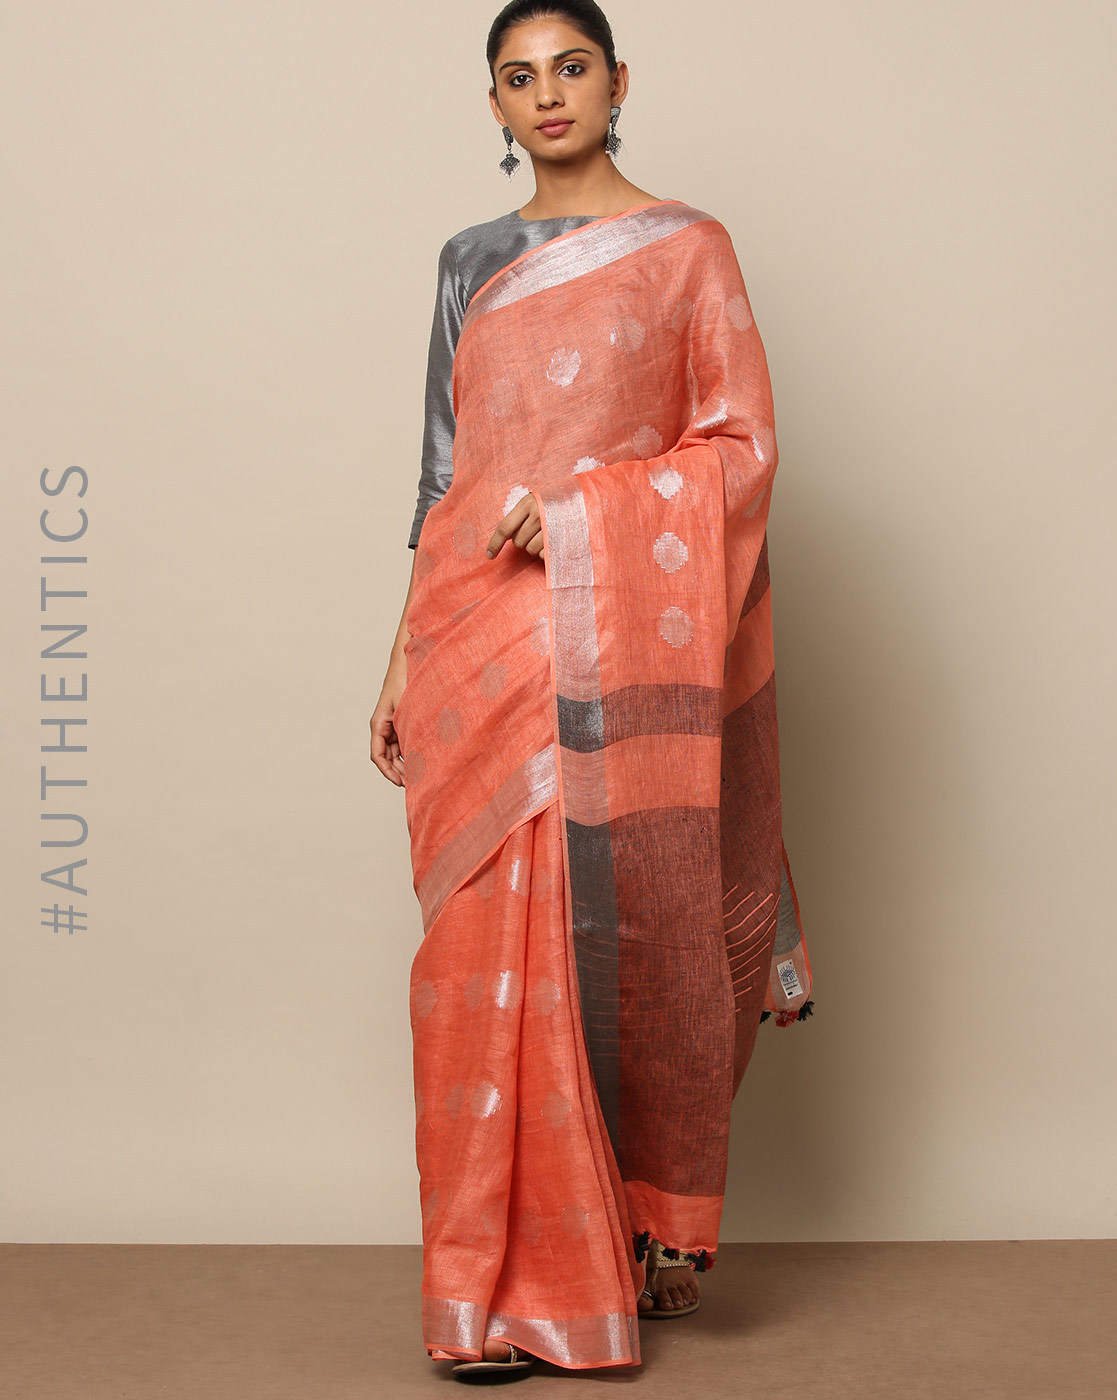 29-sarees-for-farewell-Handloom-Pure-Linen-Jacquard-Saree-with-Zari